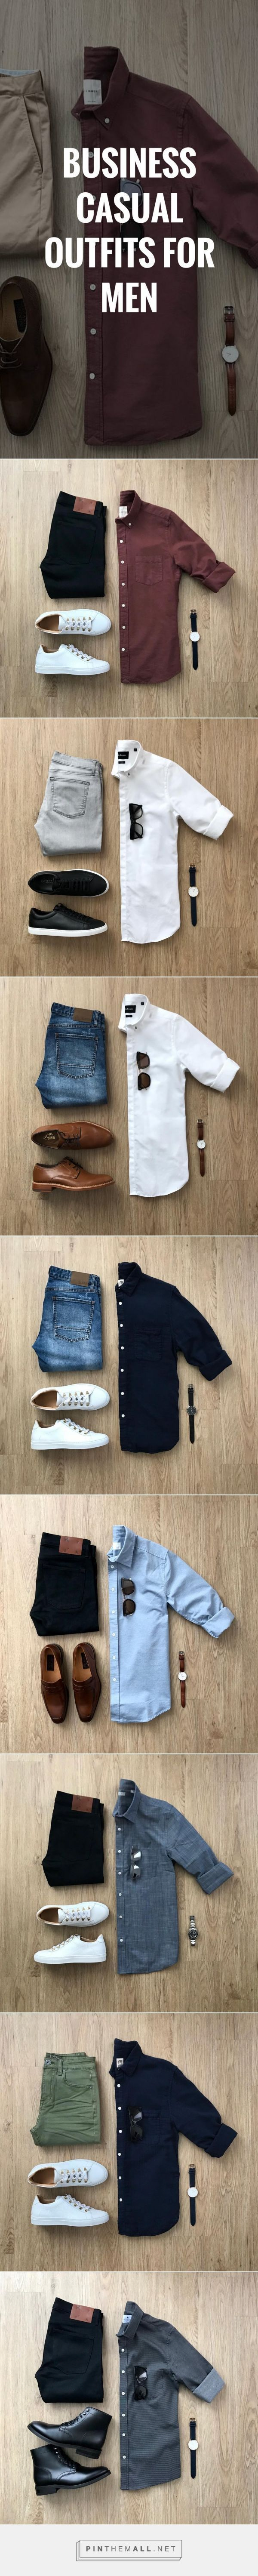 How to wear business casual outfits for men. Everything you need to know about b...